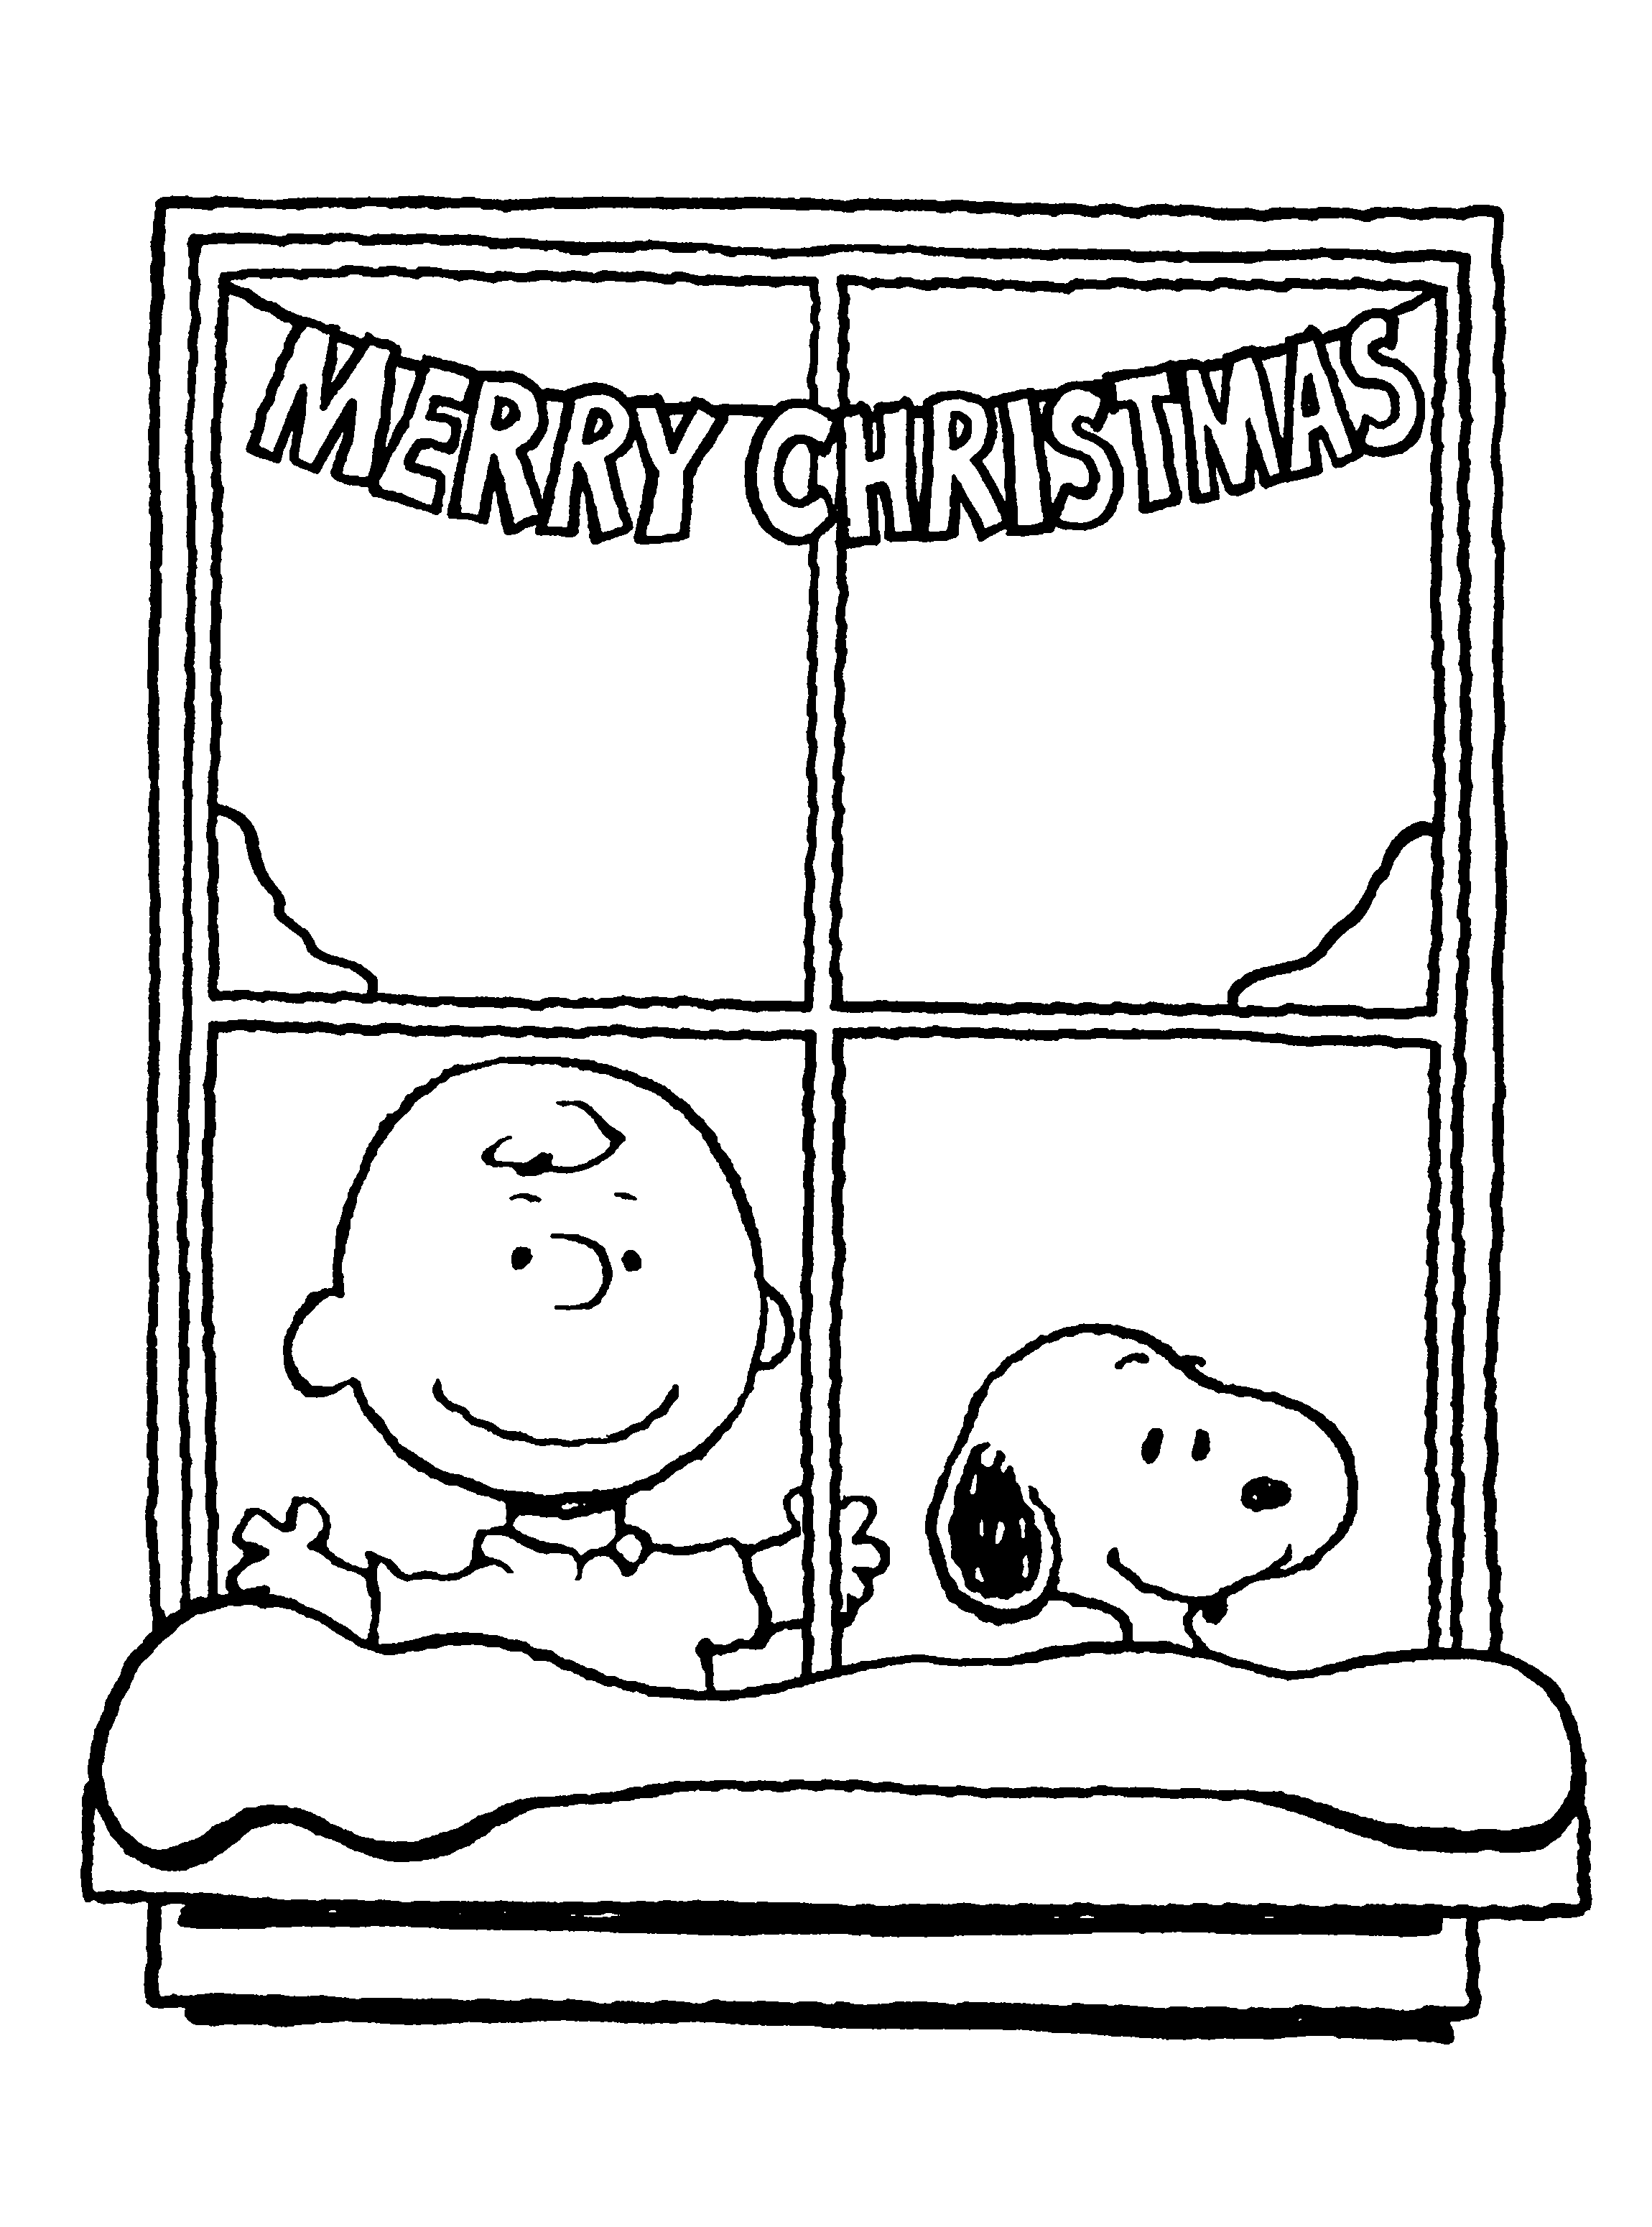 peanuts xmas coloring and activity book  merry christmas